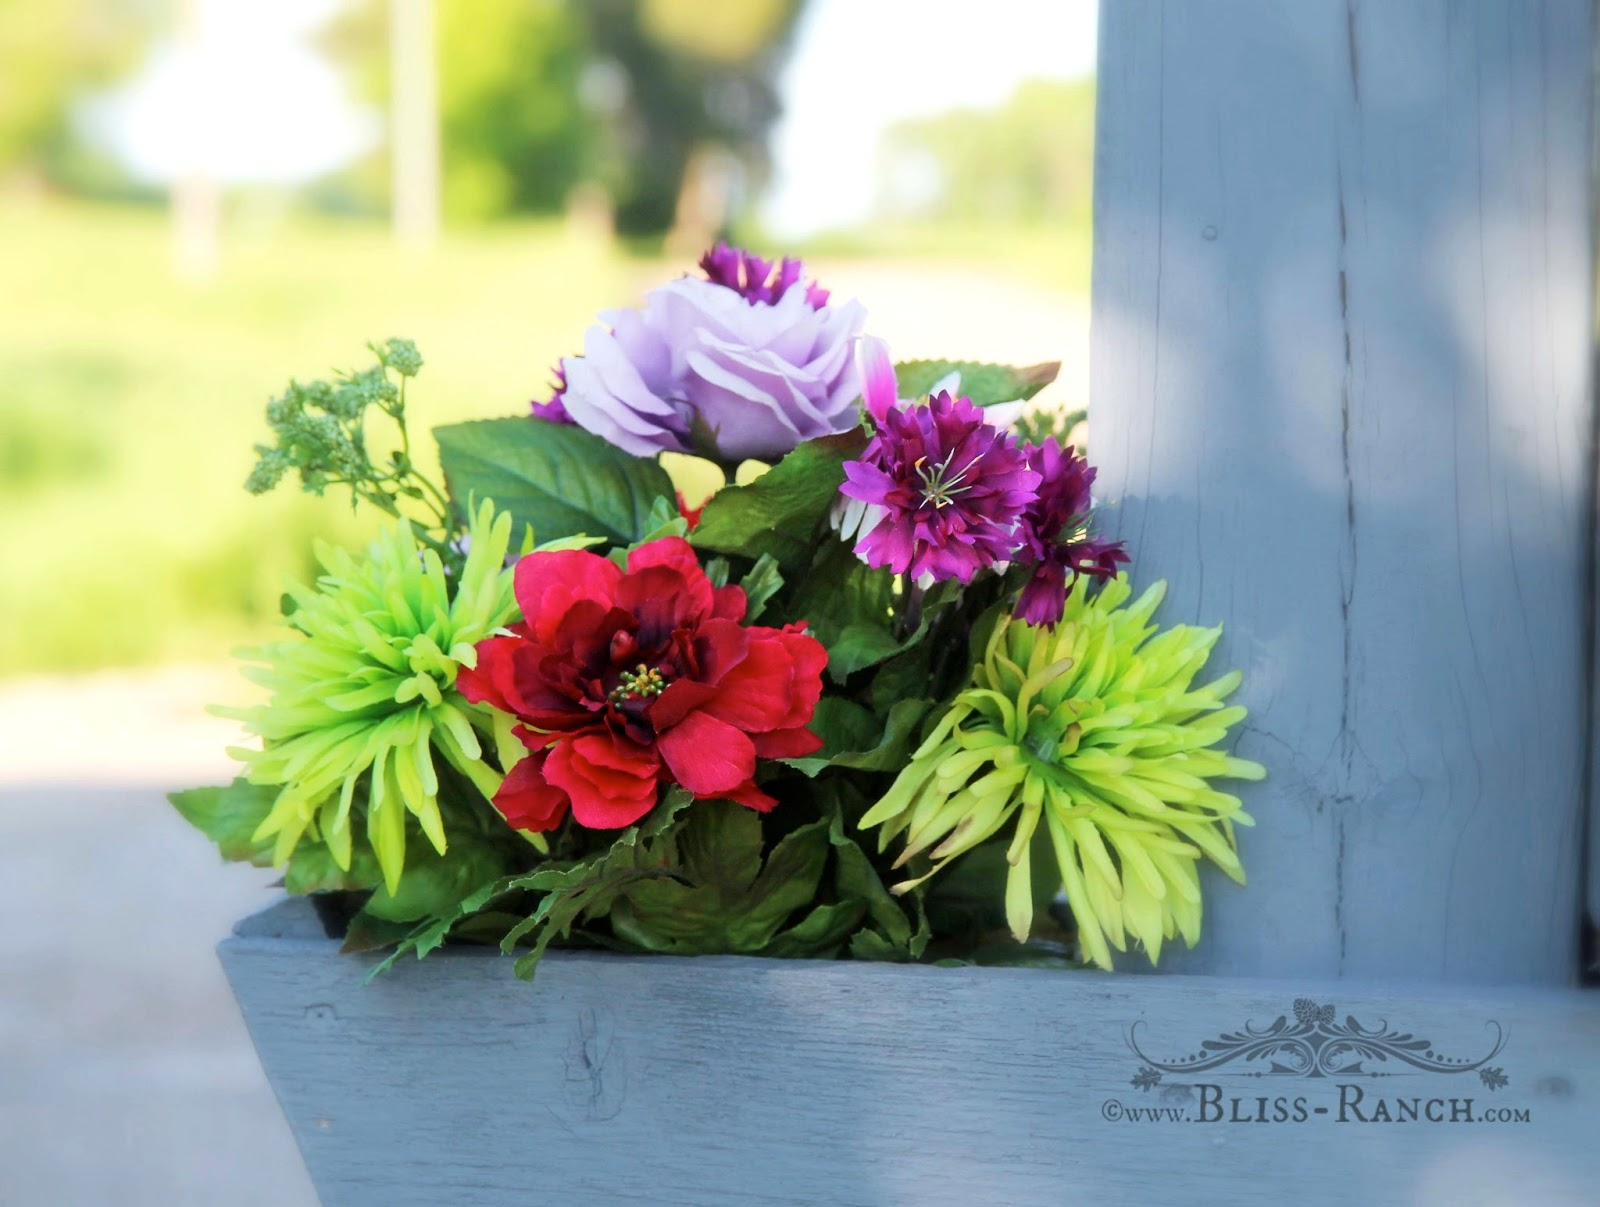 Mailbox Faux Flowers Bliss-Ranch.com #mailboxmakeover